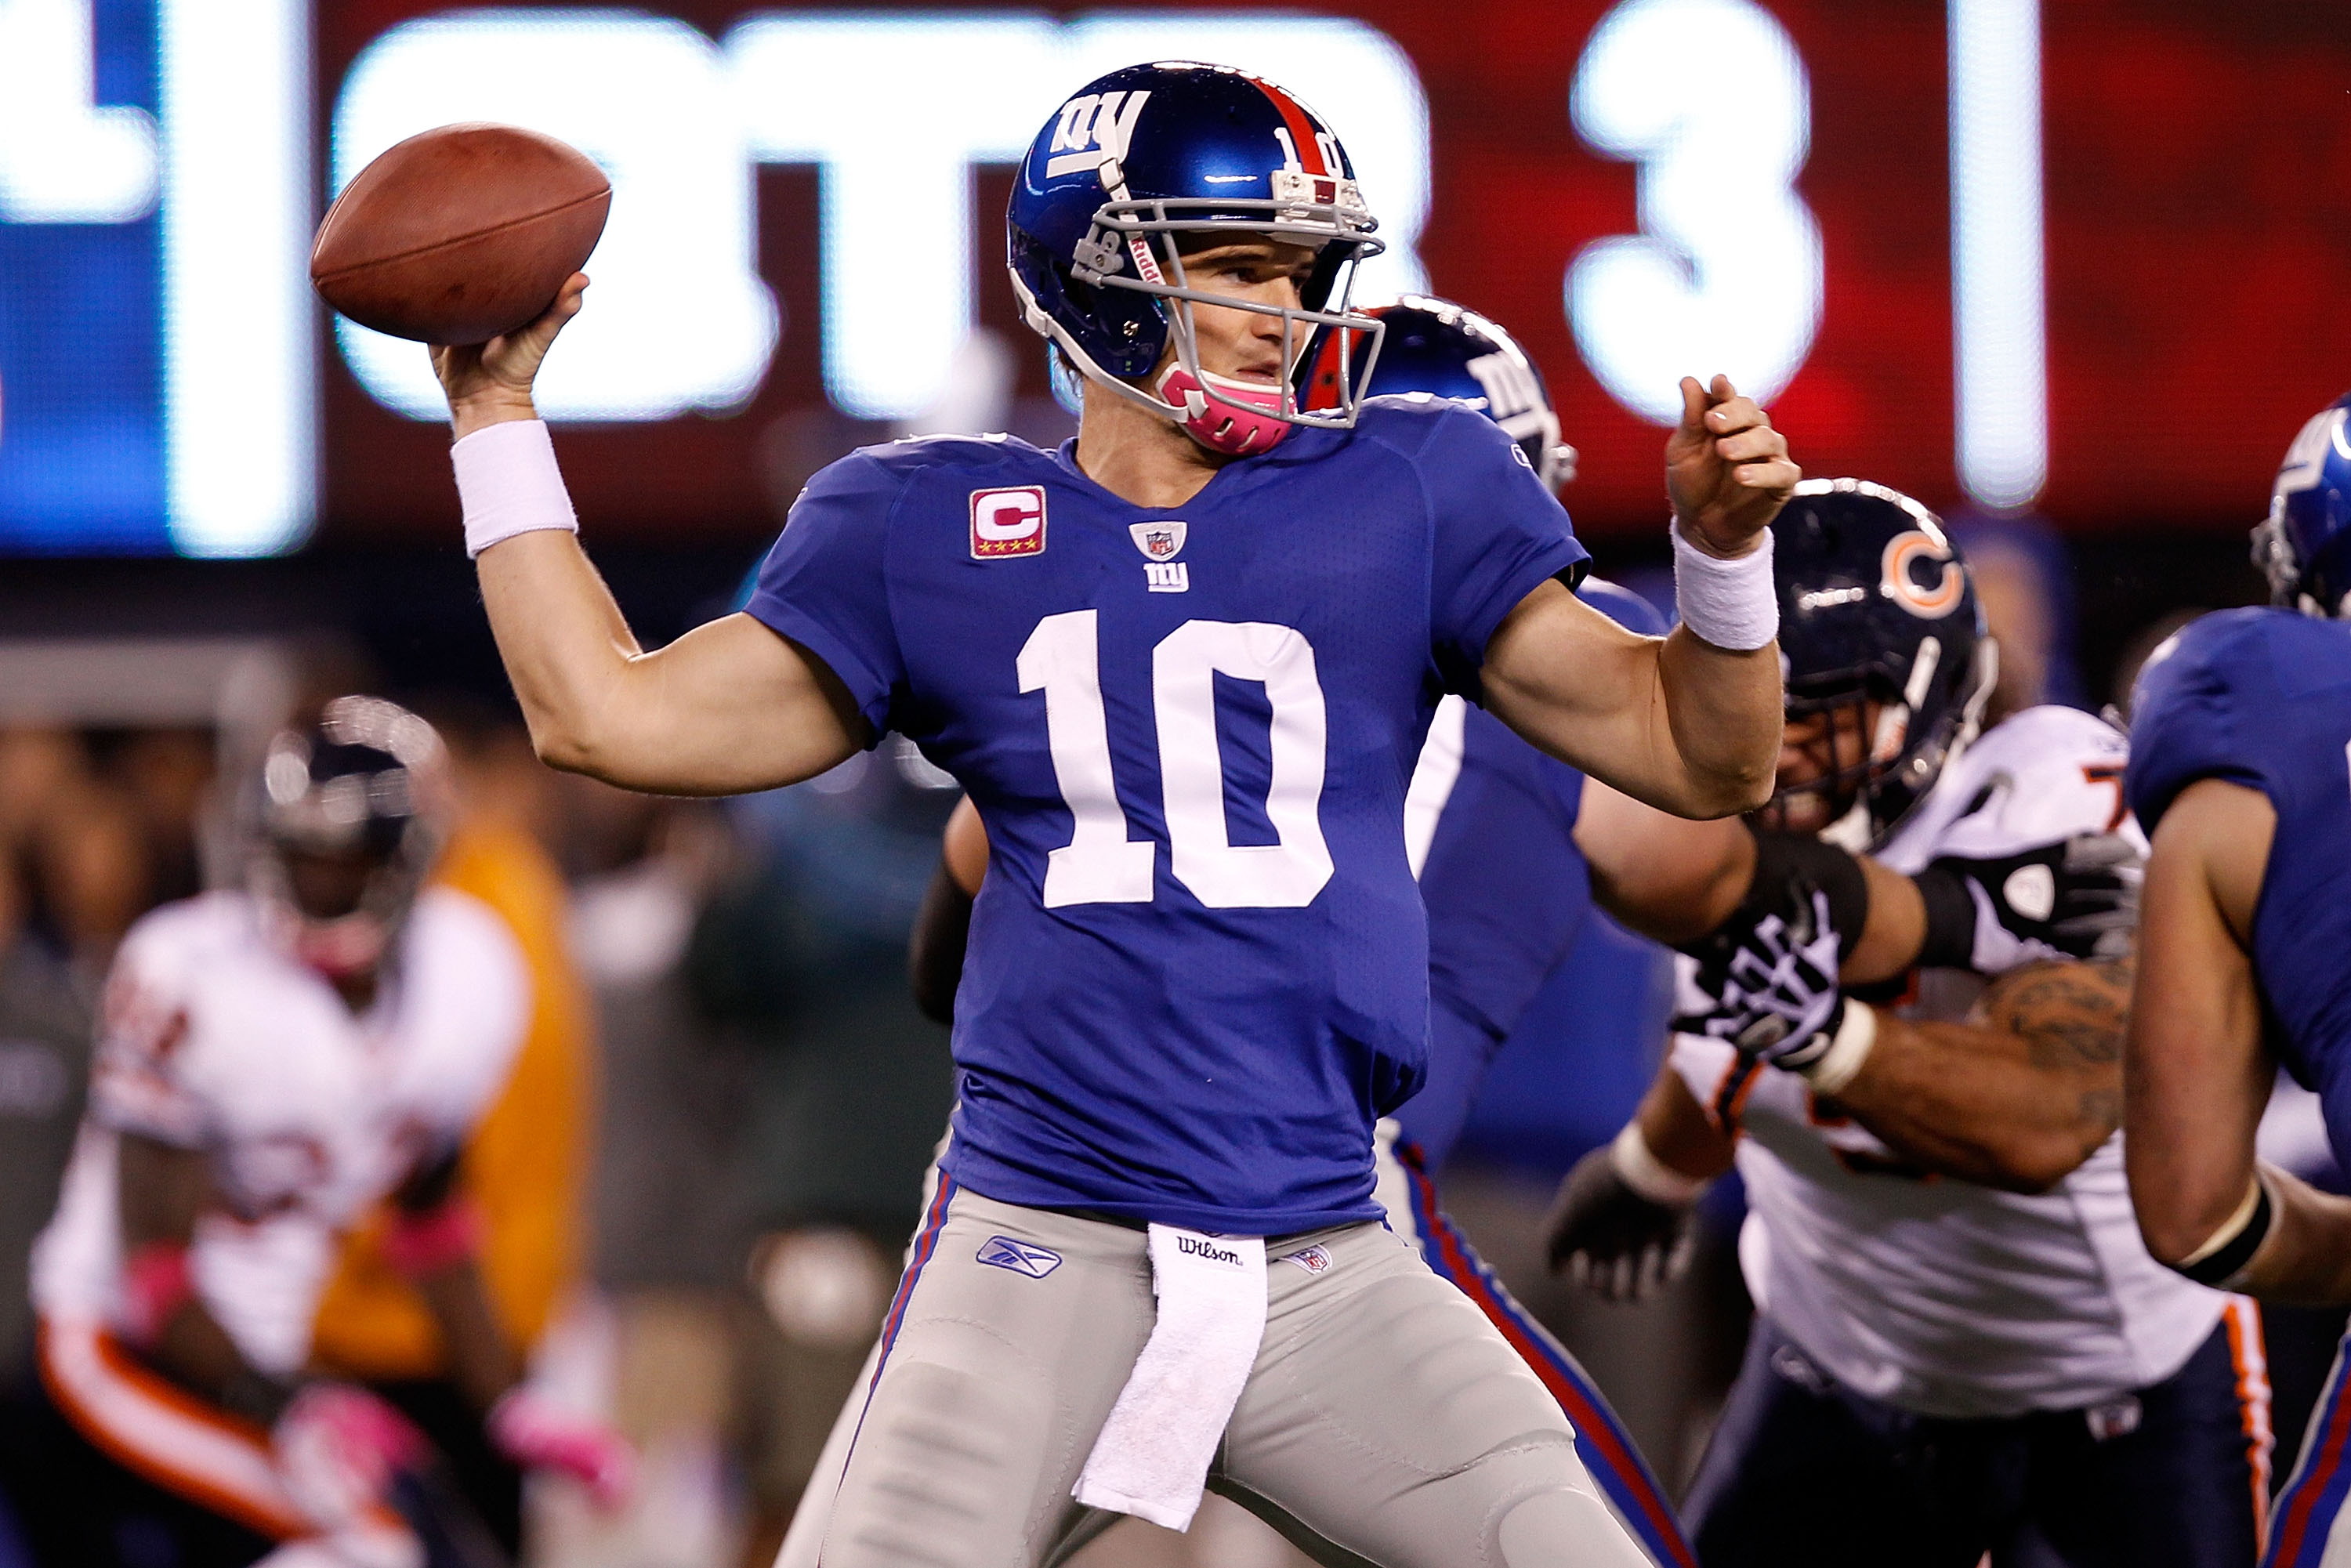 EAST RUTHERFORD, NJ - OCTOBER 03:  Eli Manning #10 of the New York Giants drops back against the Chicago Bears at New Meadowlands Stadium on October 3, 2010 in East Rutherford, New Jersey.  (Photo by Michael Heiman/Getty Images)